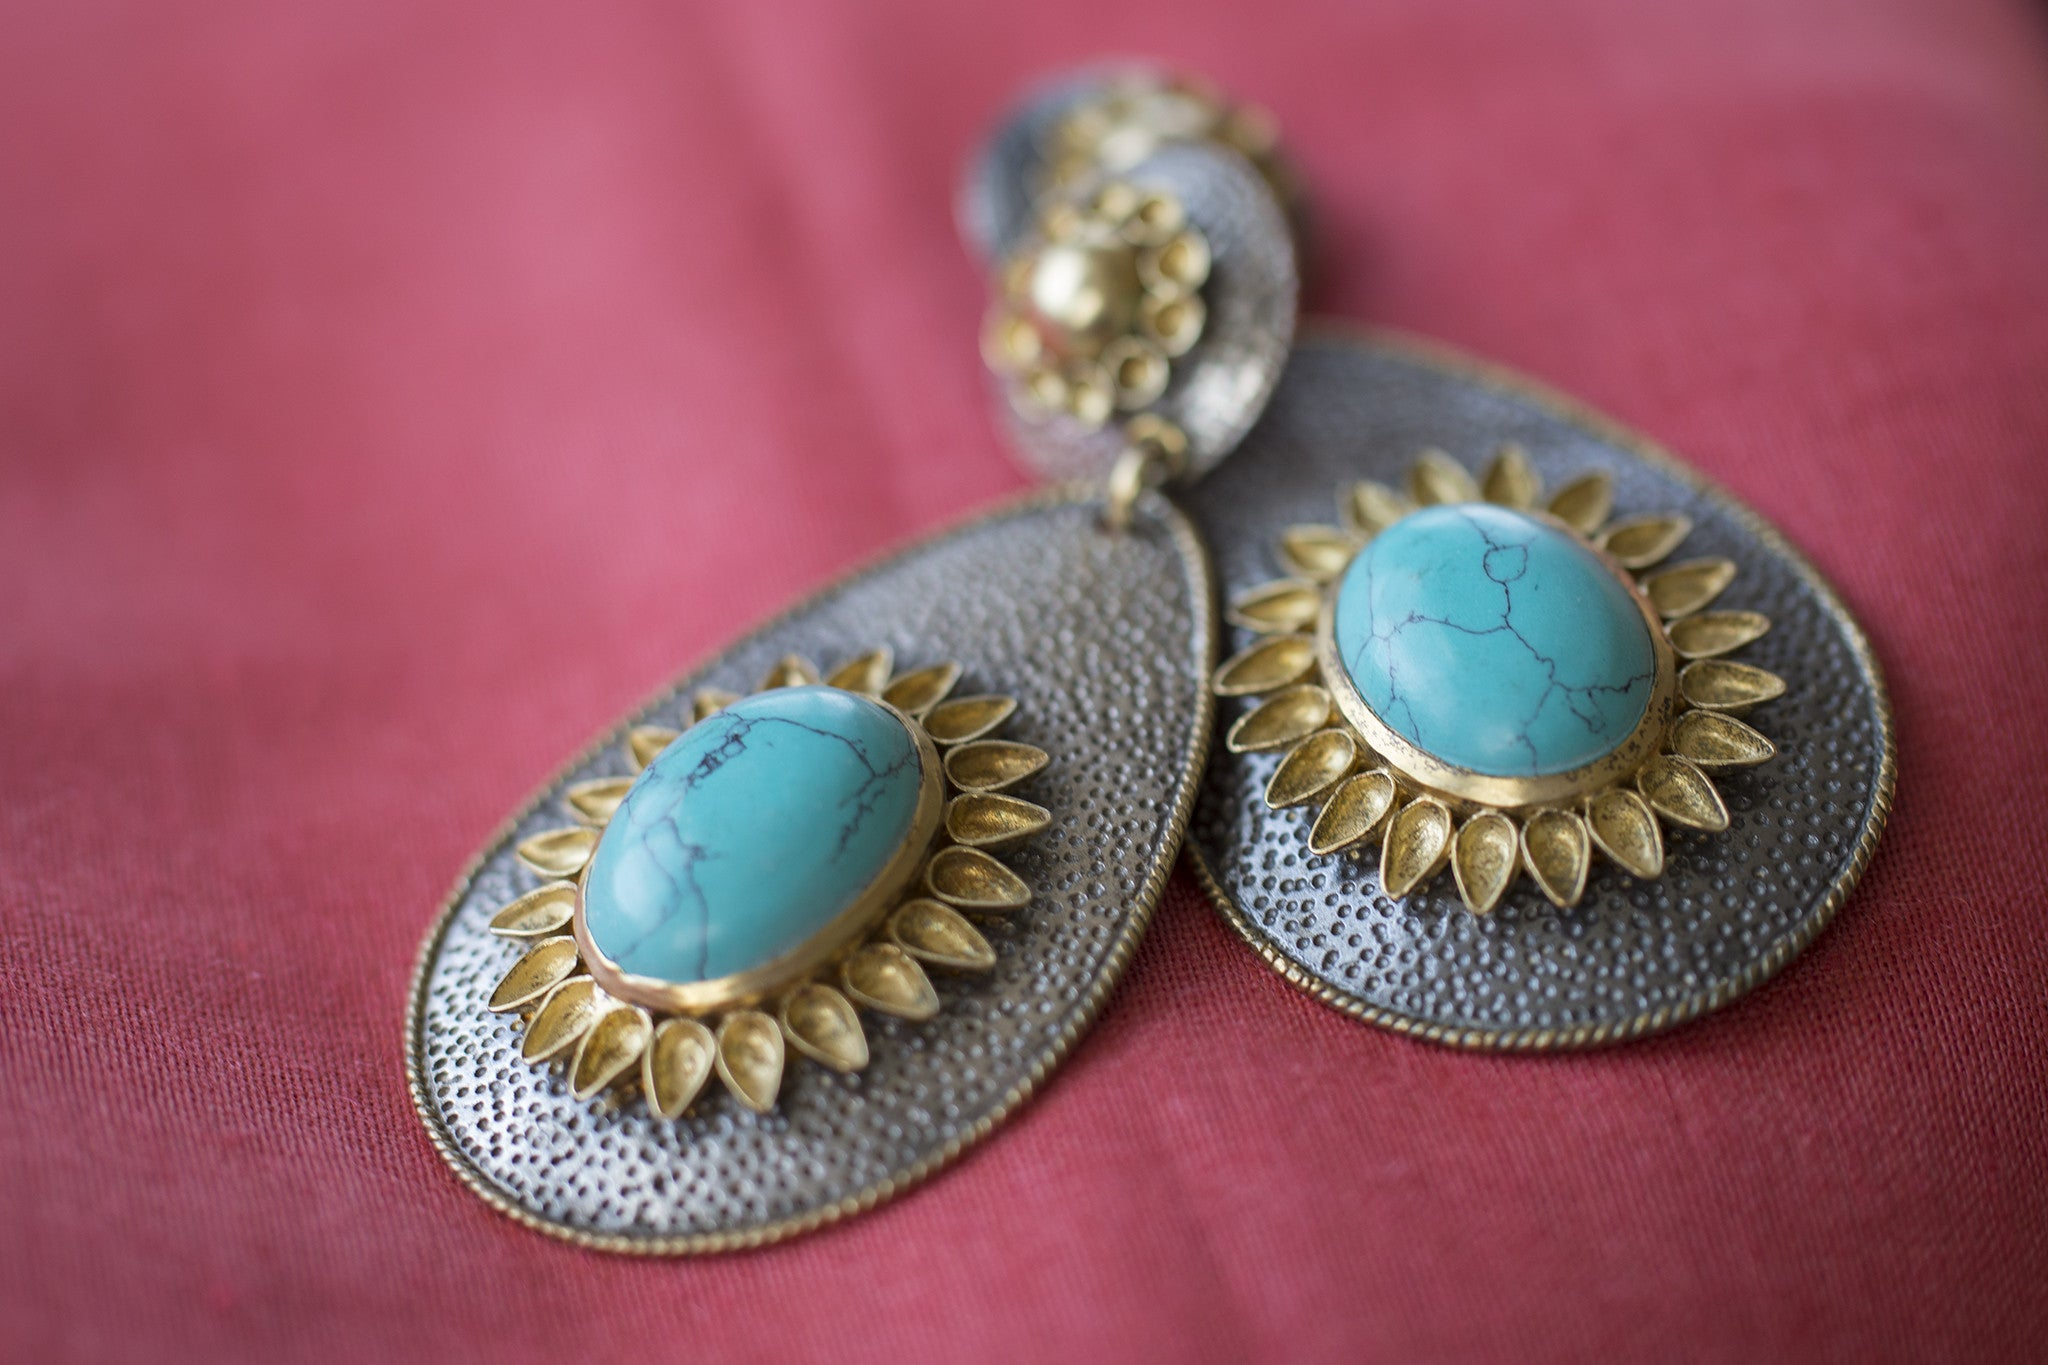 20A156 Silver Gold Plated Amrapali Earrings in Two Tone with Turquoise